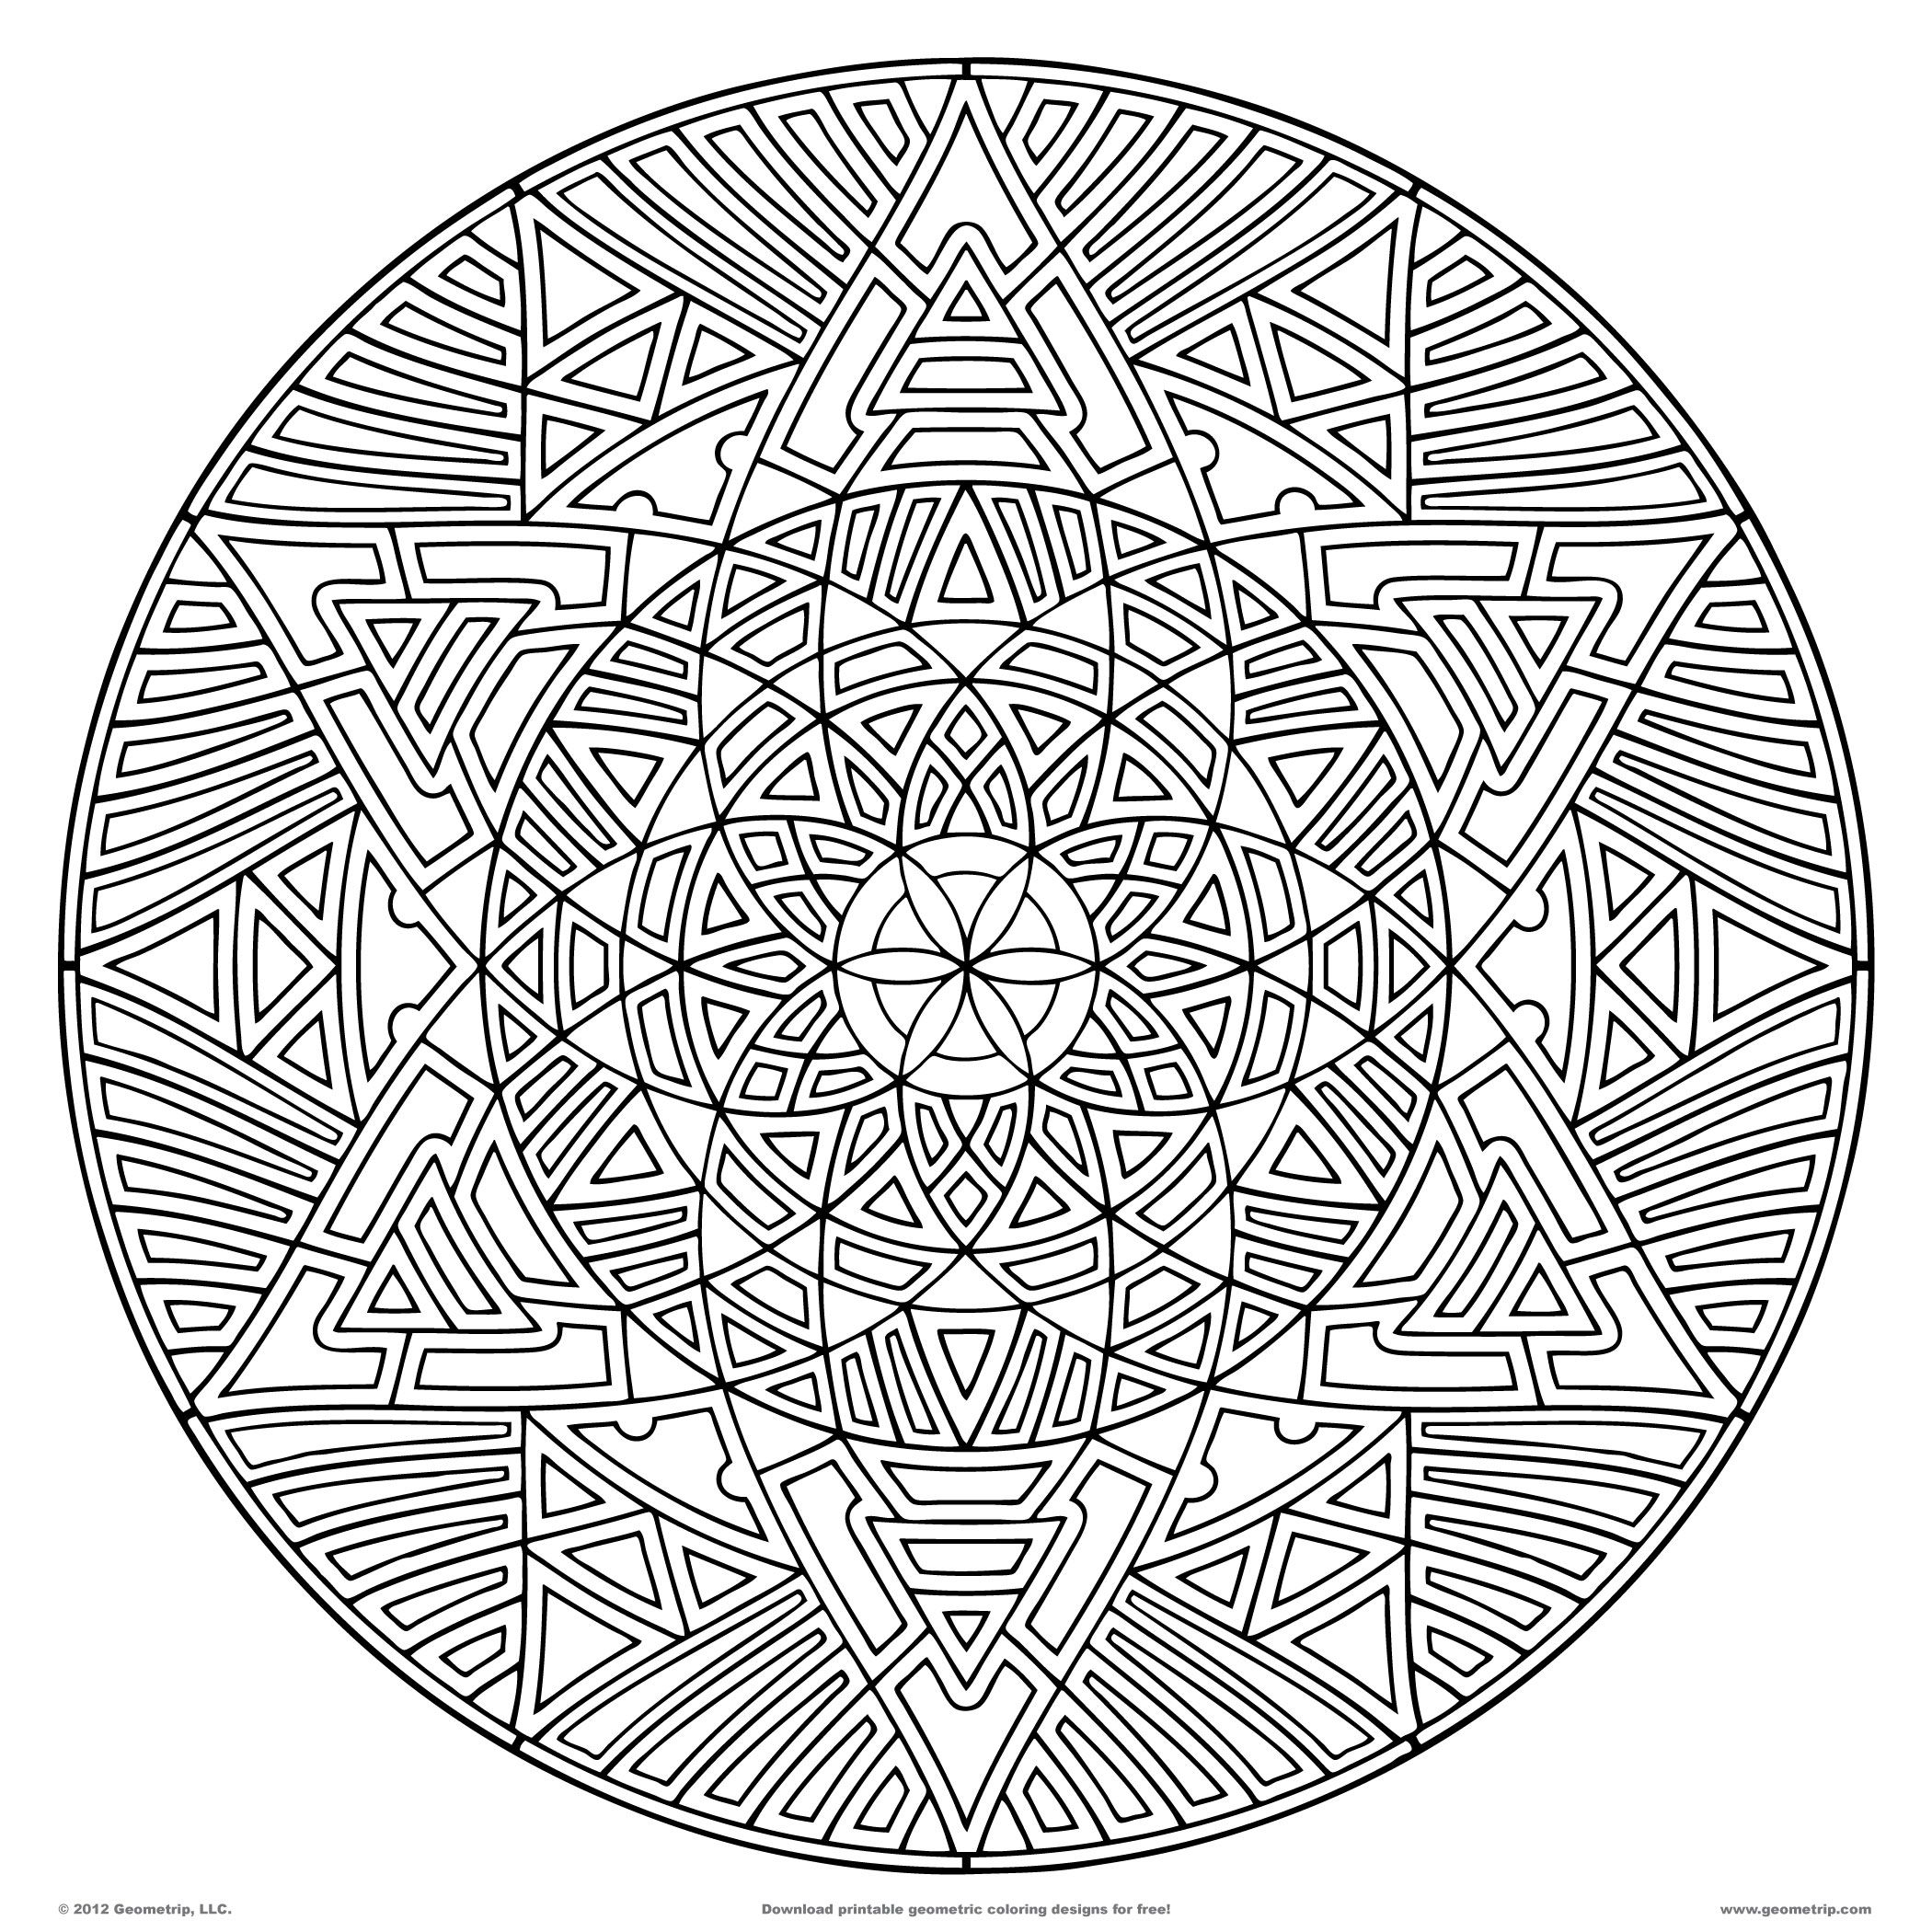 Colouring sheets hard - Mandala Coloring